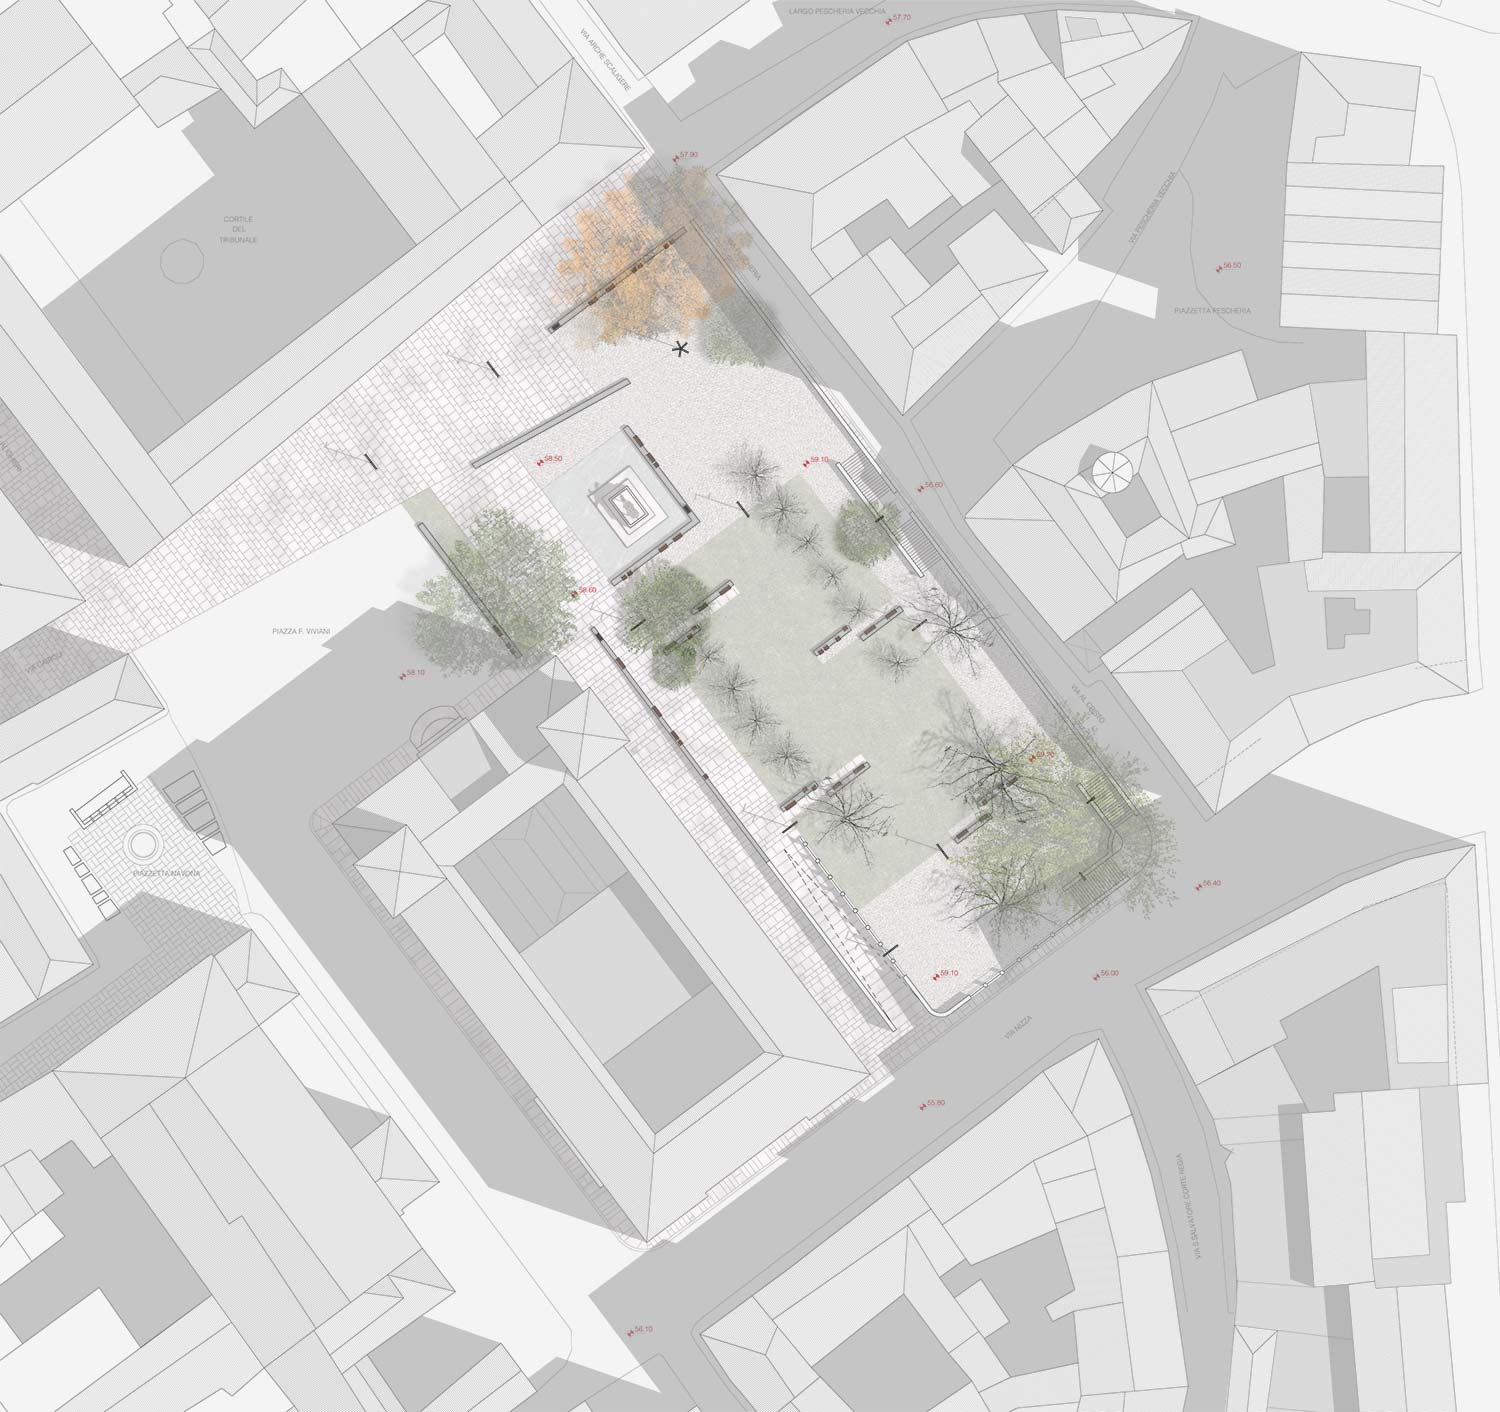 Piazza_Indipendenza_plan